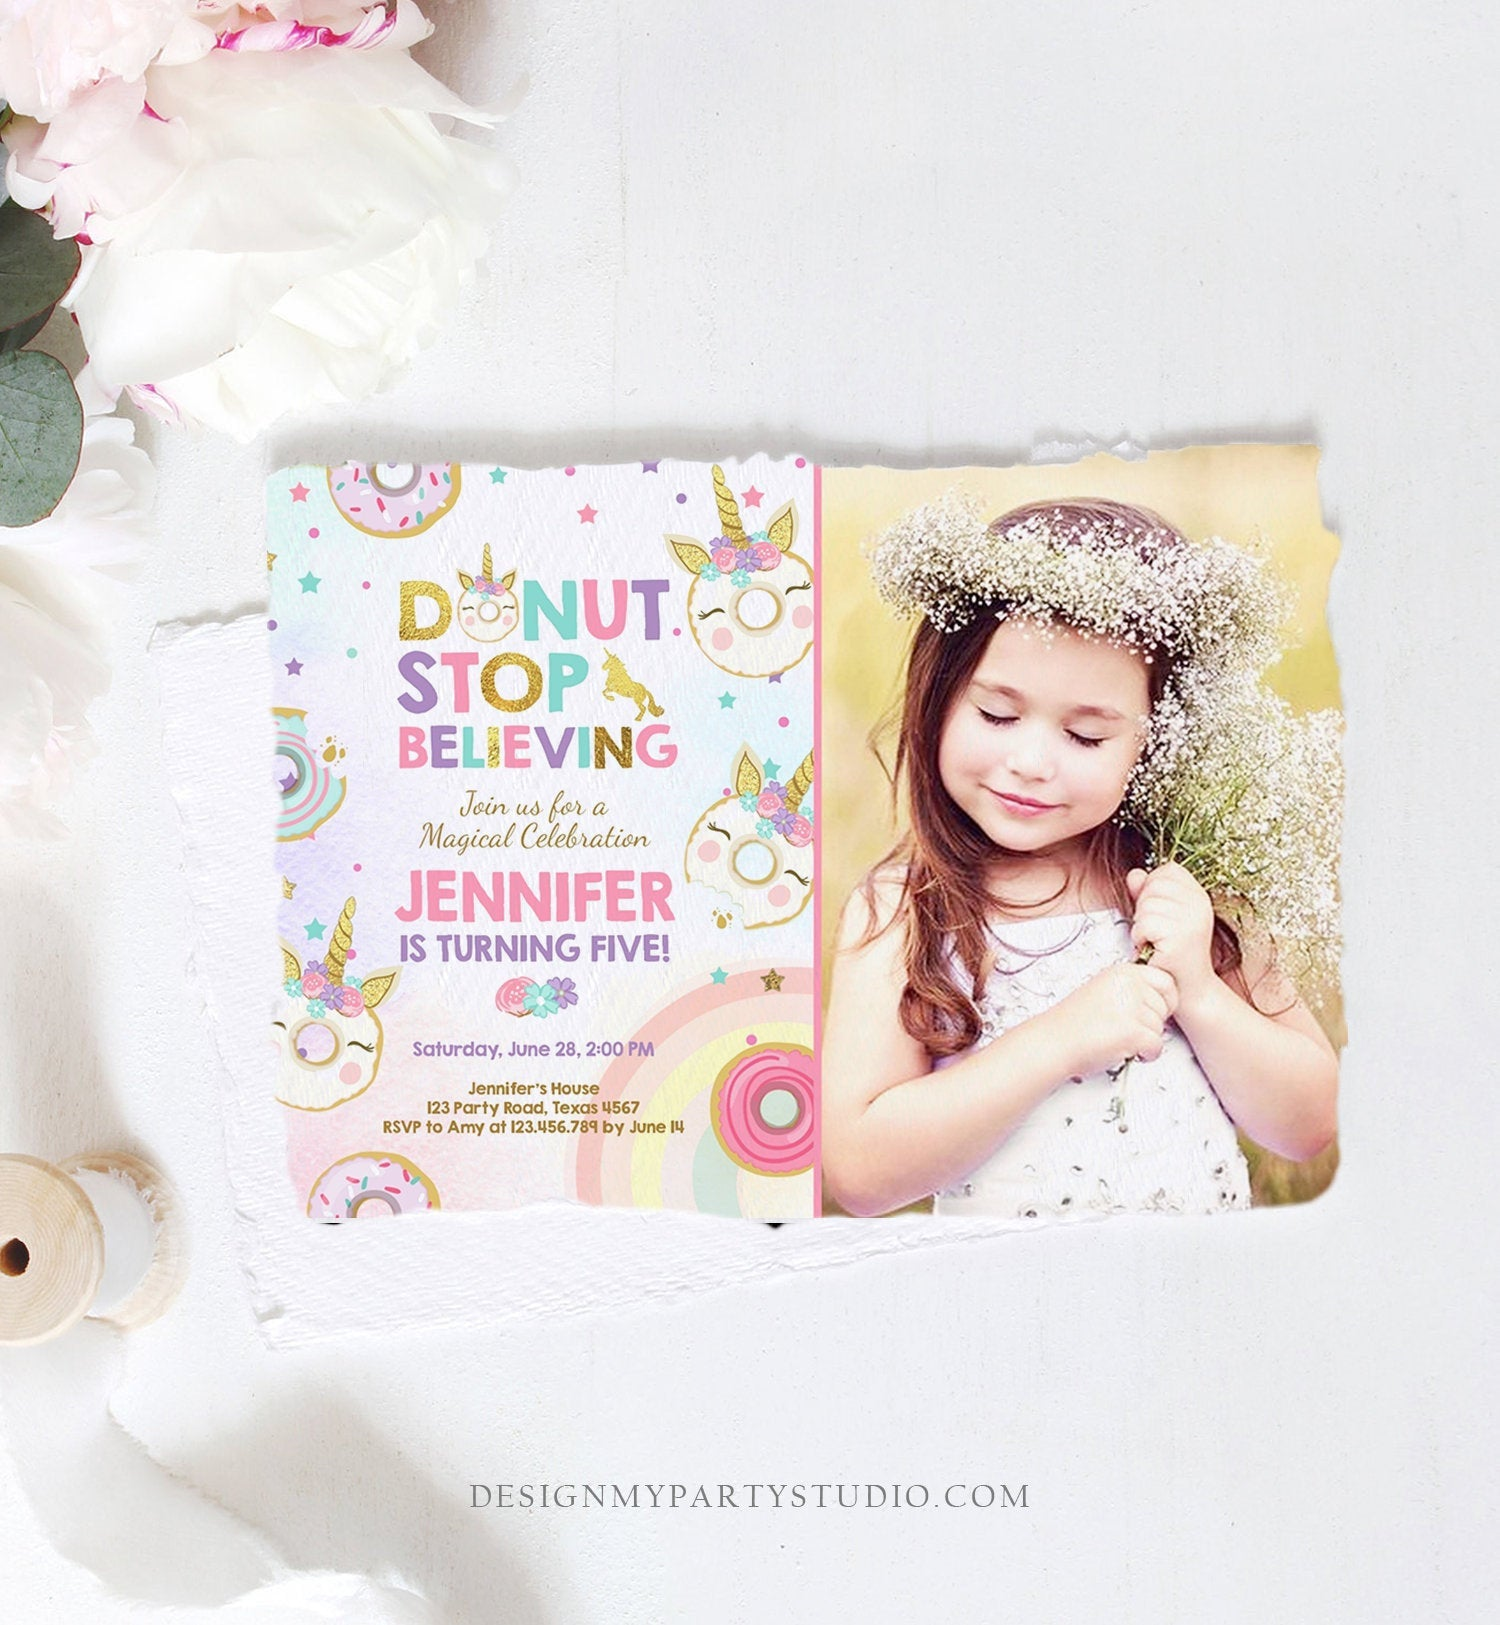 Editable Unicorn Donut Birthday Invitation Donut Stop Believing Magical Rainbow Girl Pink Purple Gold Glitter Printable Corjl Template 0041